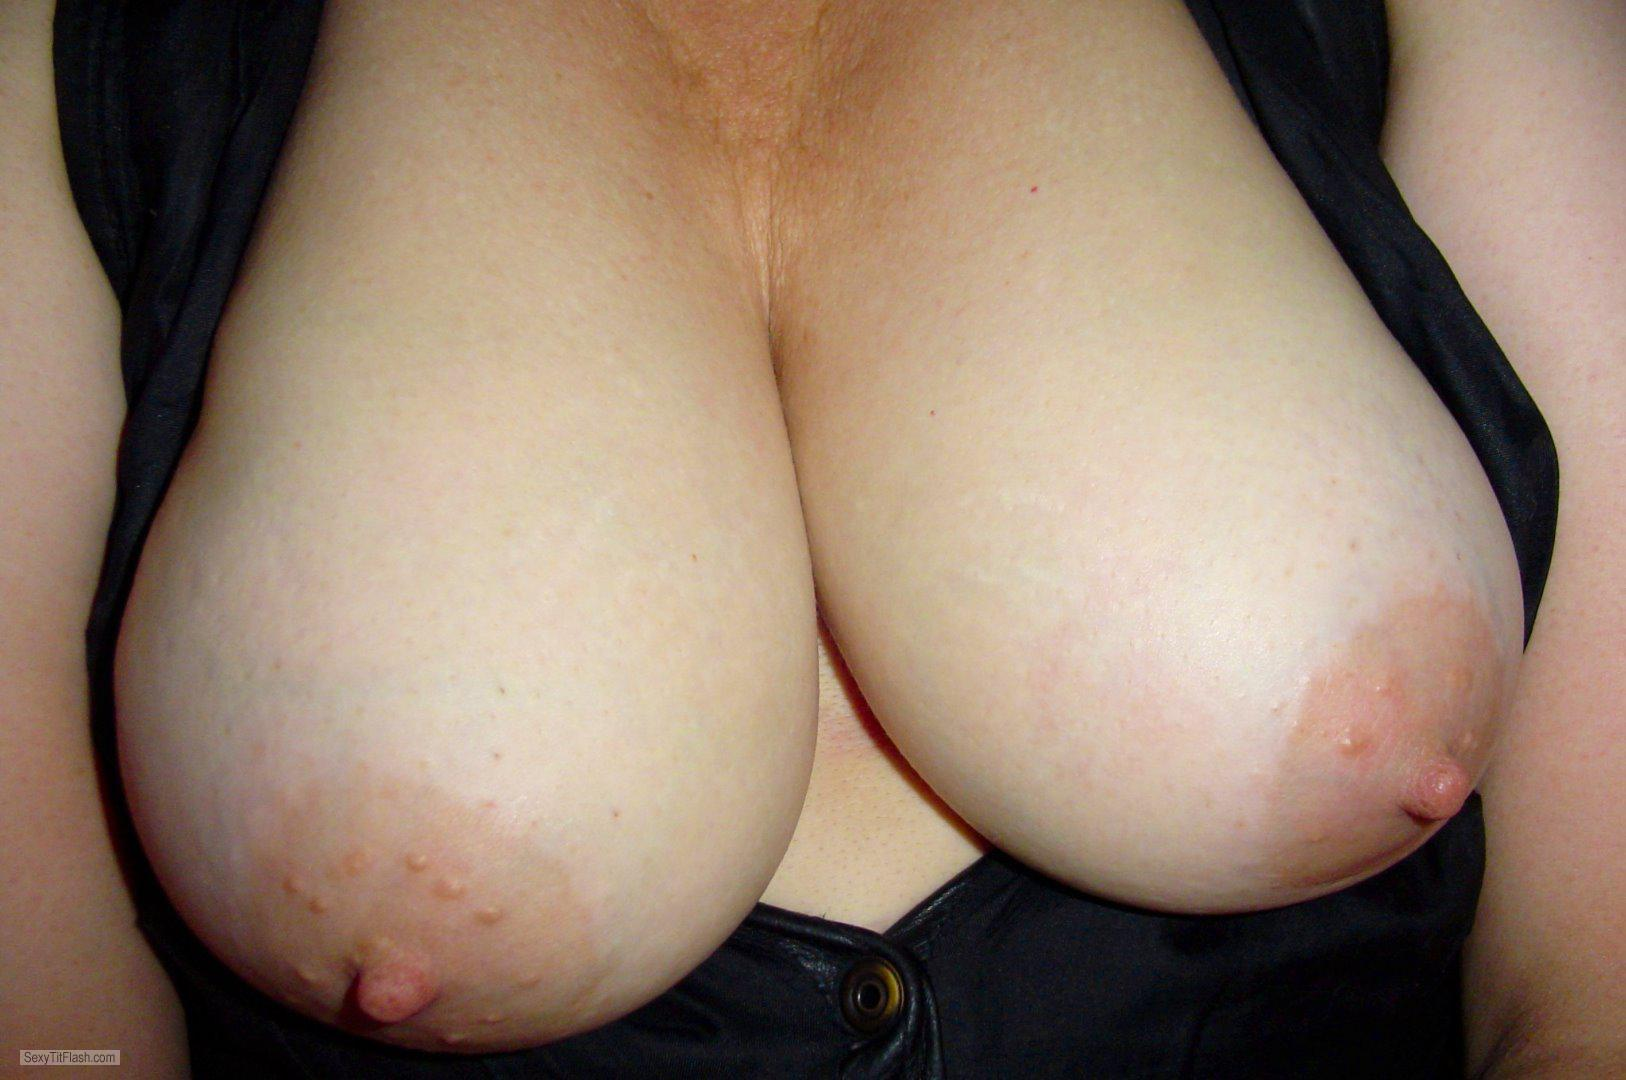 Tit Flash: Wife's Big Tits - Nipples from United States